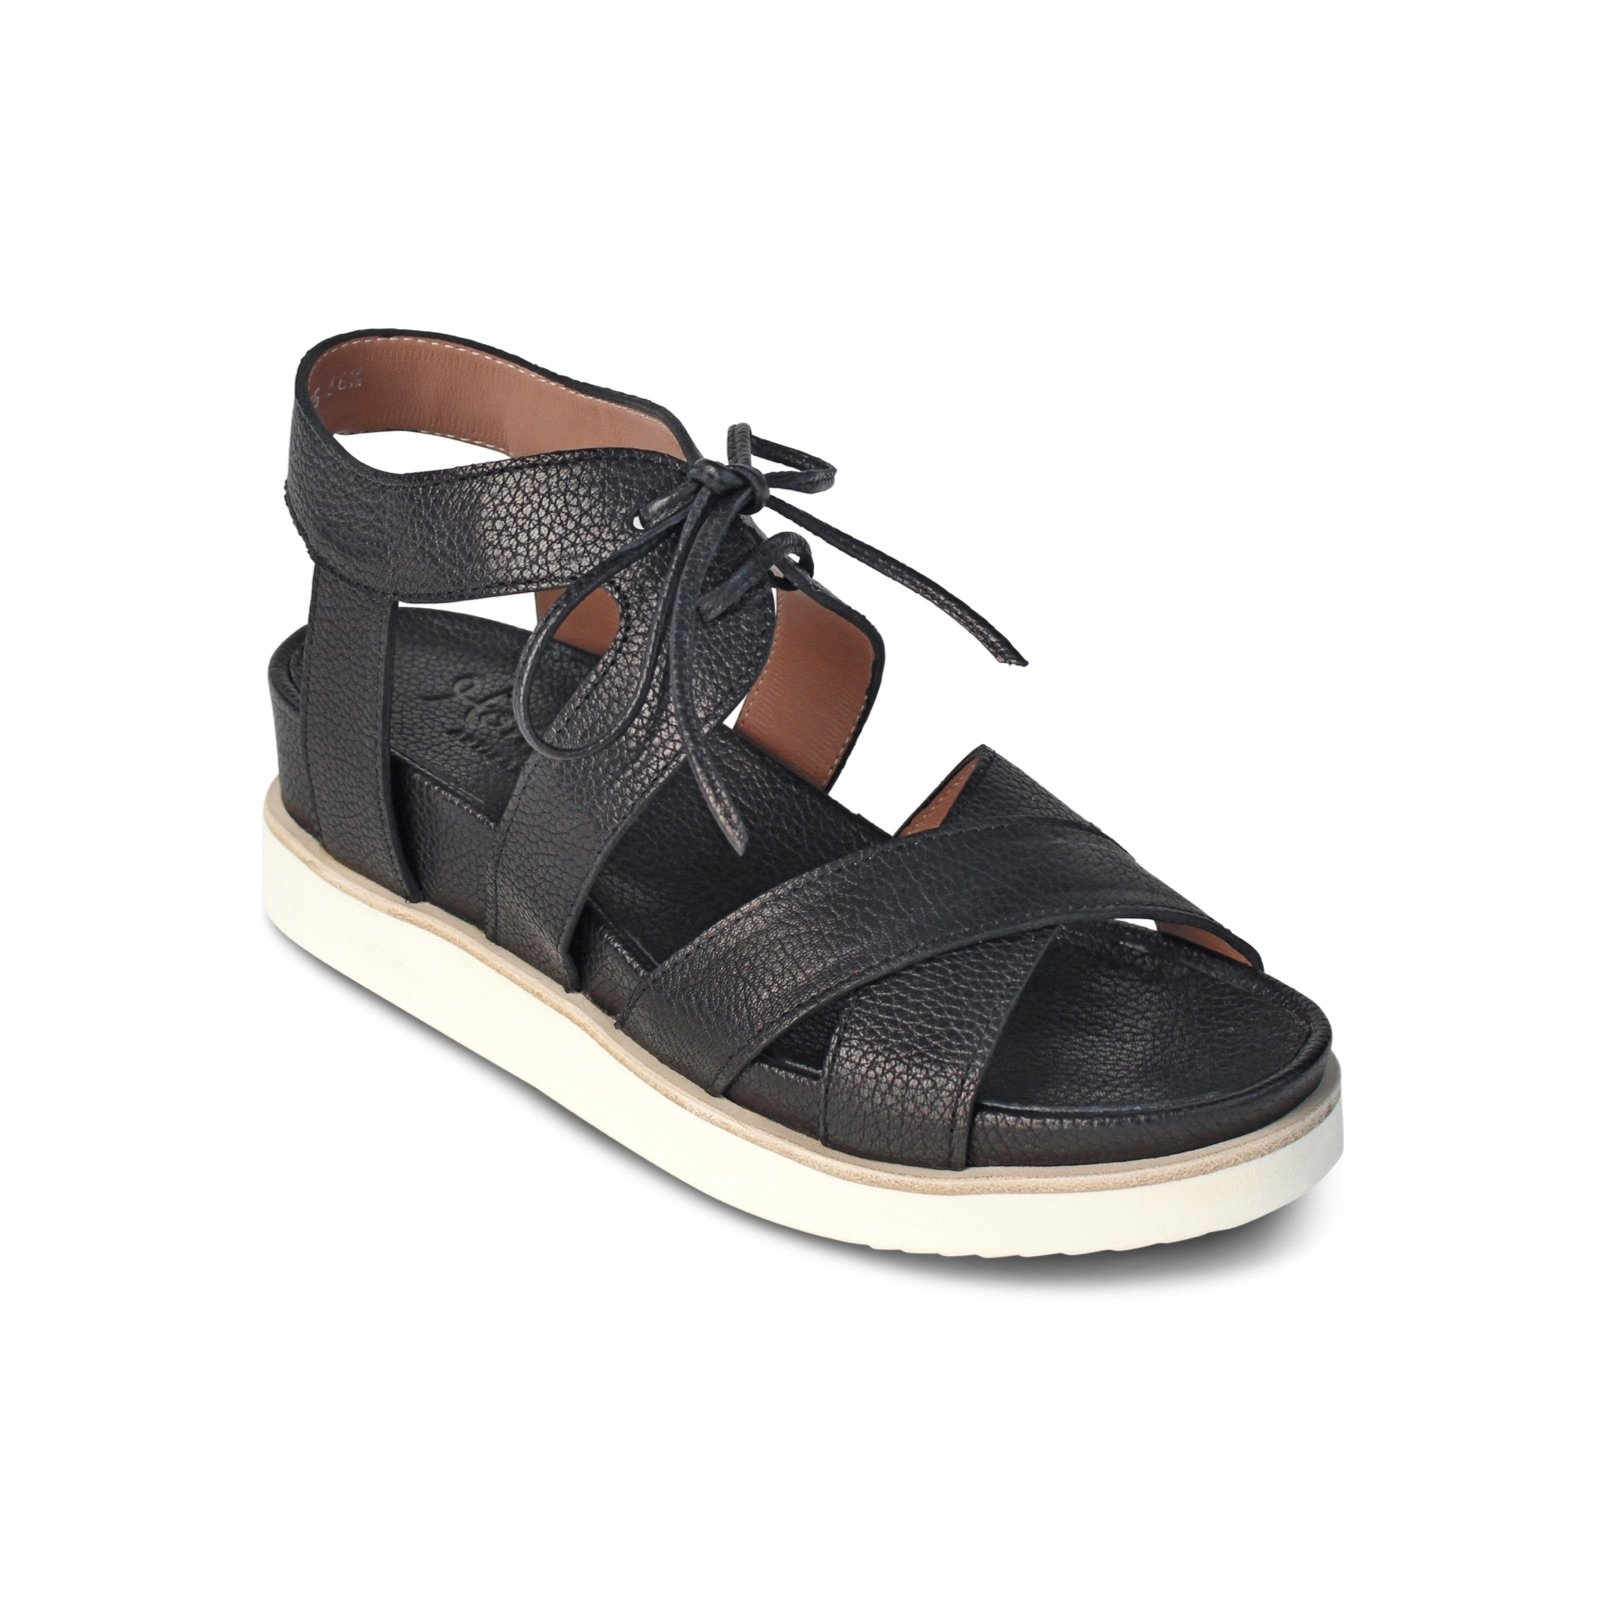 Elba Sandal by Homers Shoes (Leather Sandal) | Artful Home